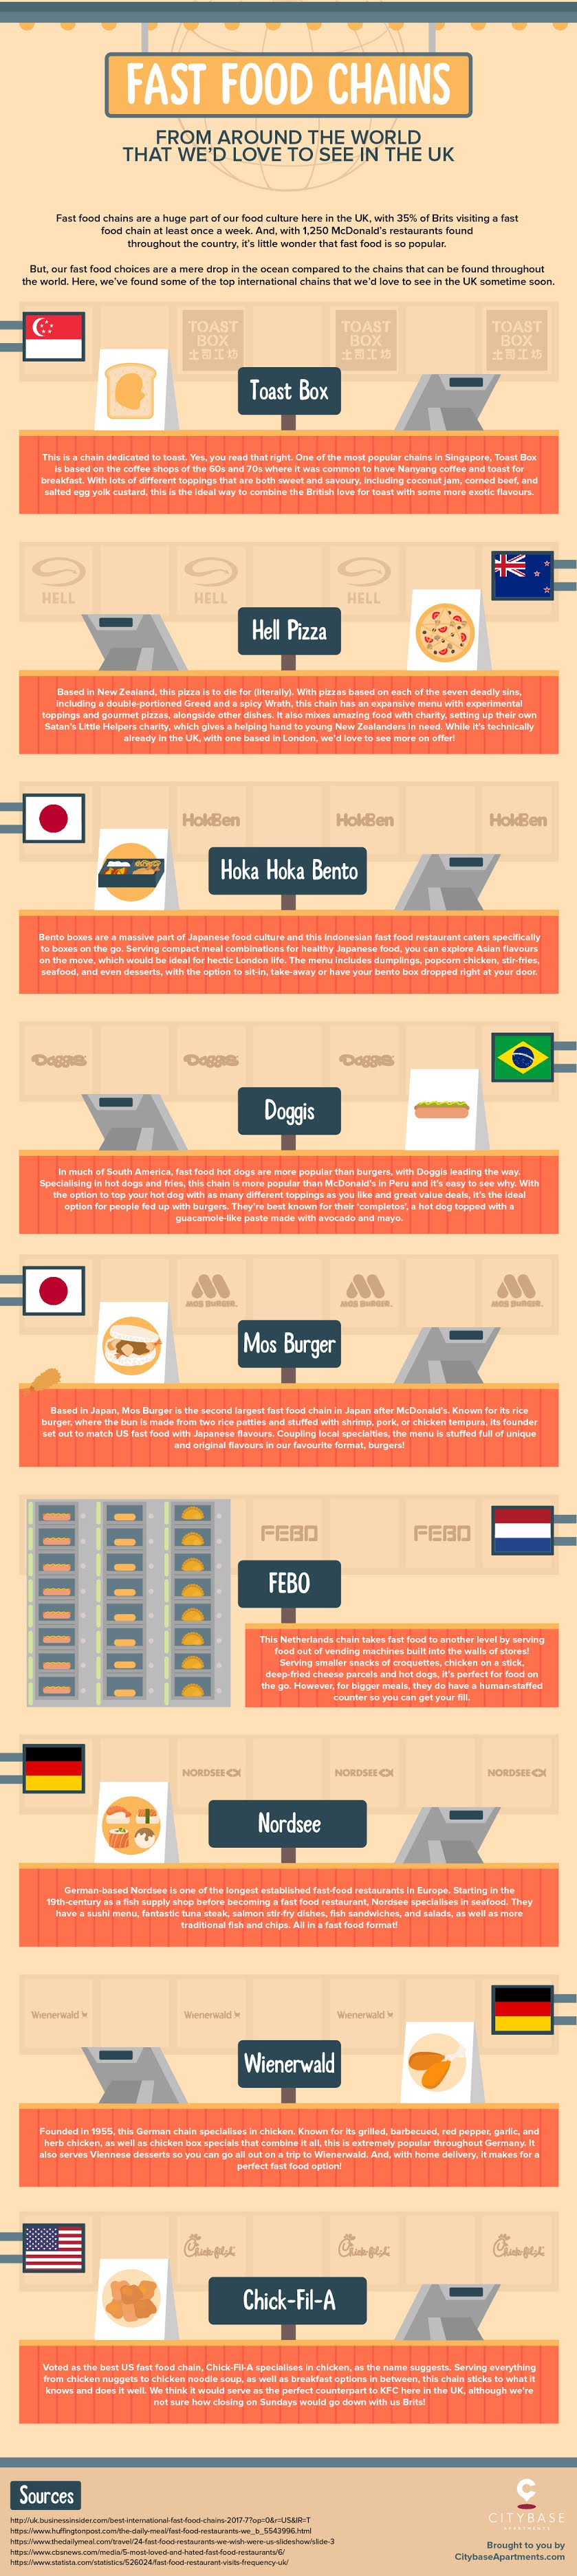 Fast Food Chains from Around the World That We'd Love to See in The UK #infographic #Fast Food #Fast Food Chains #Food #World